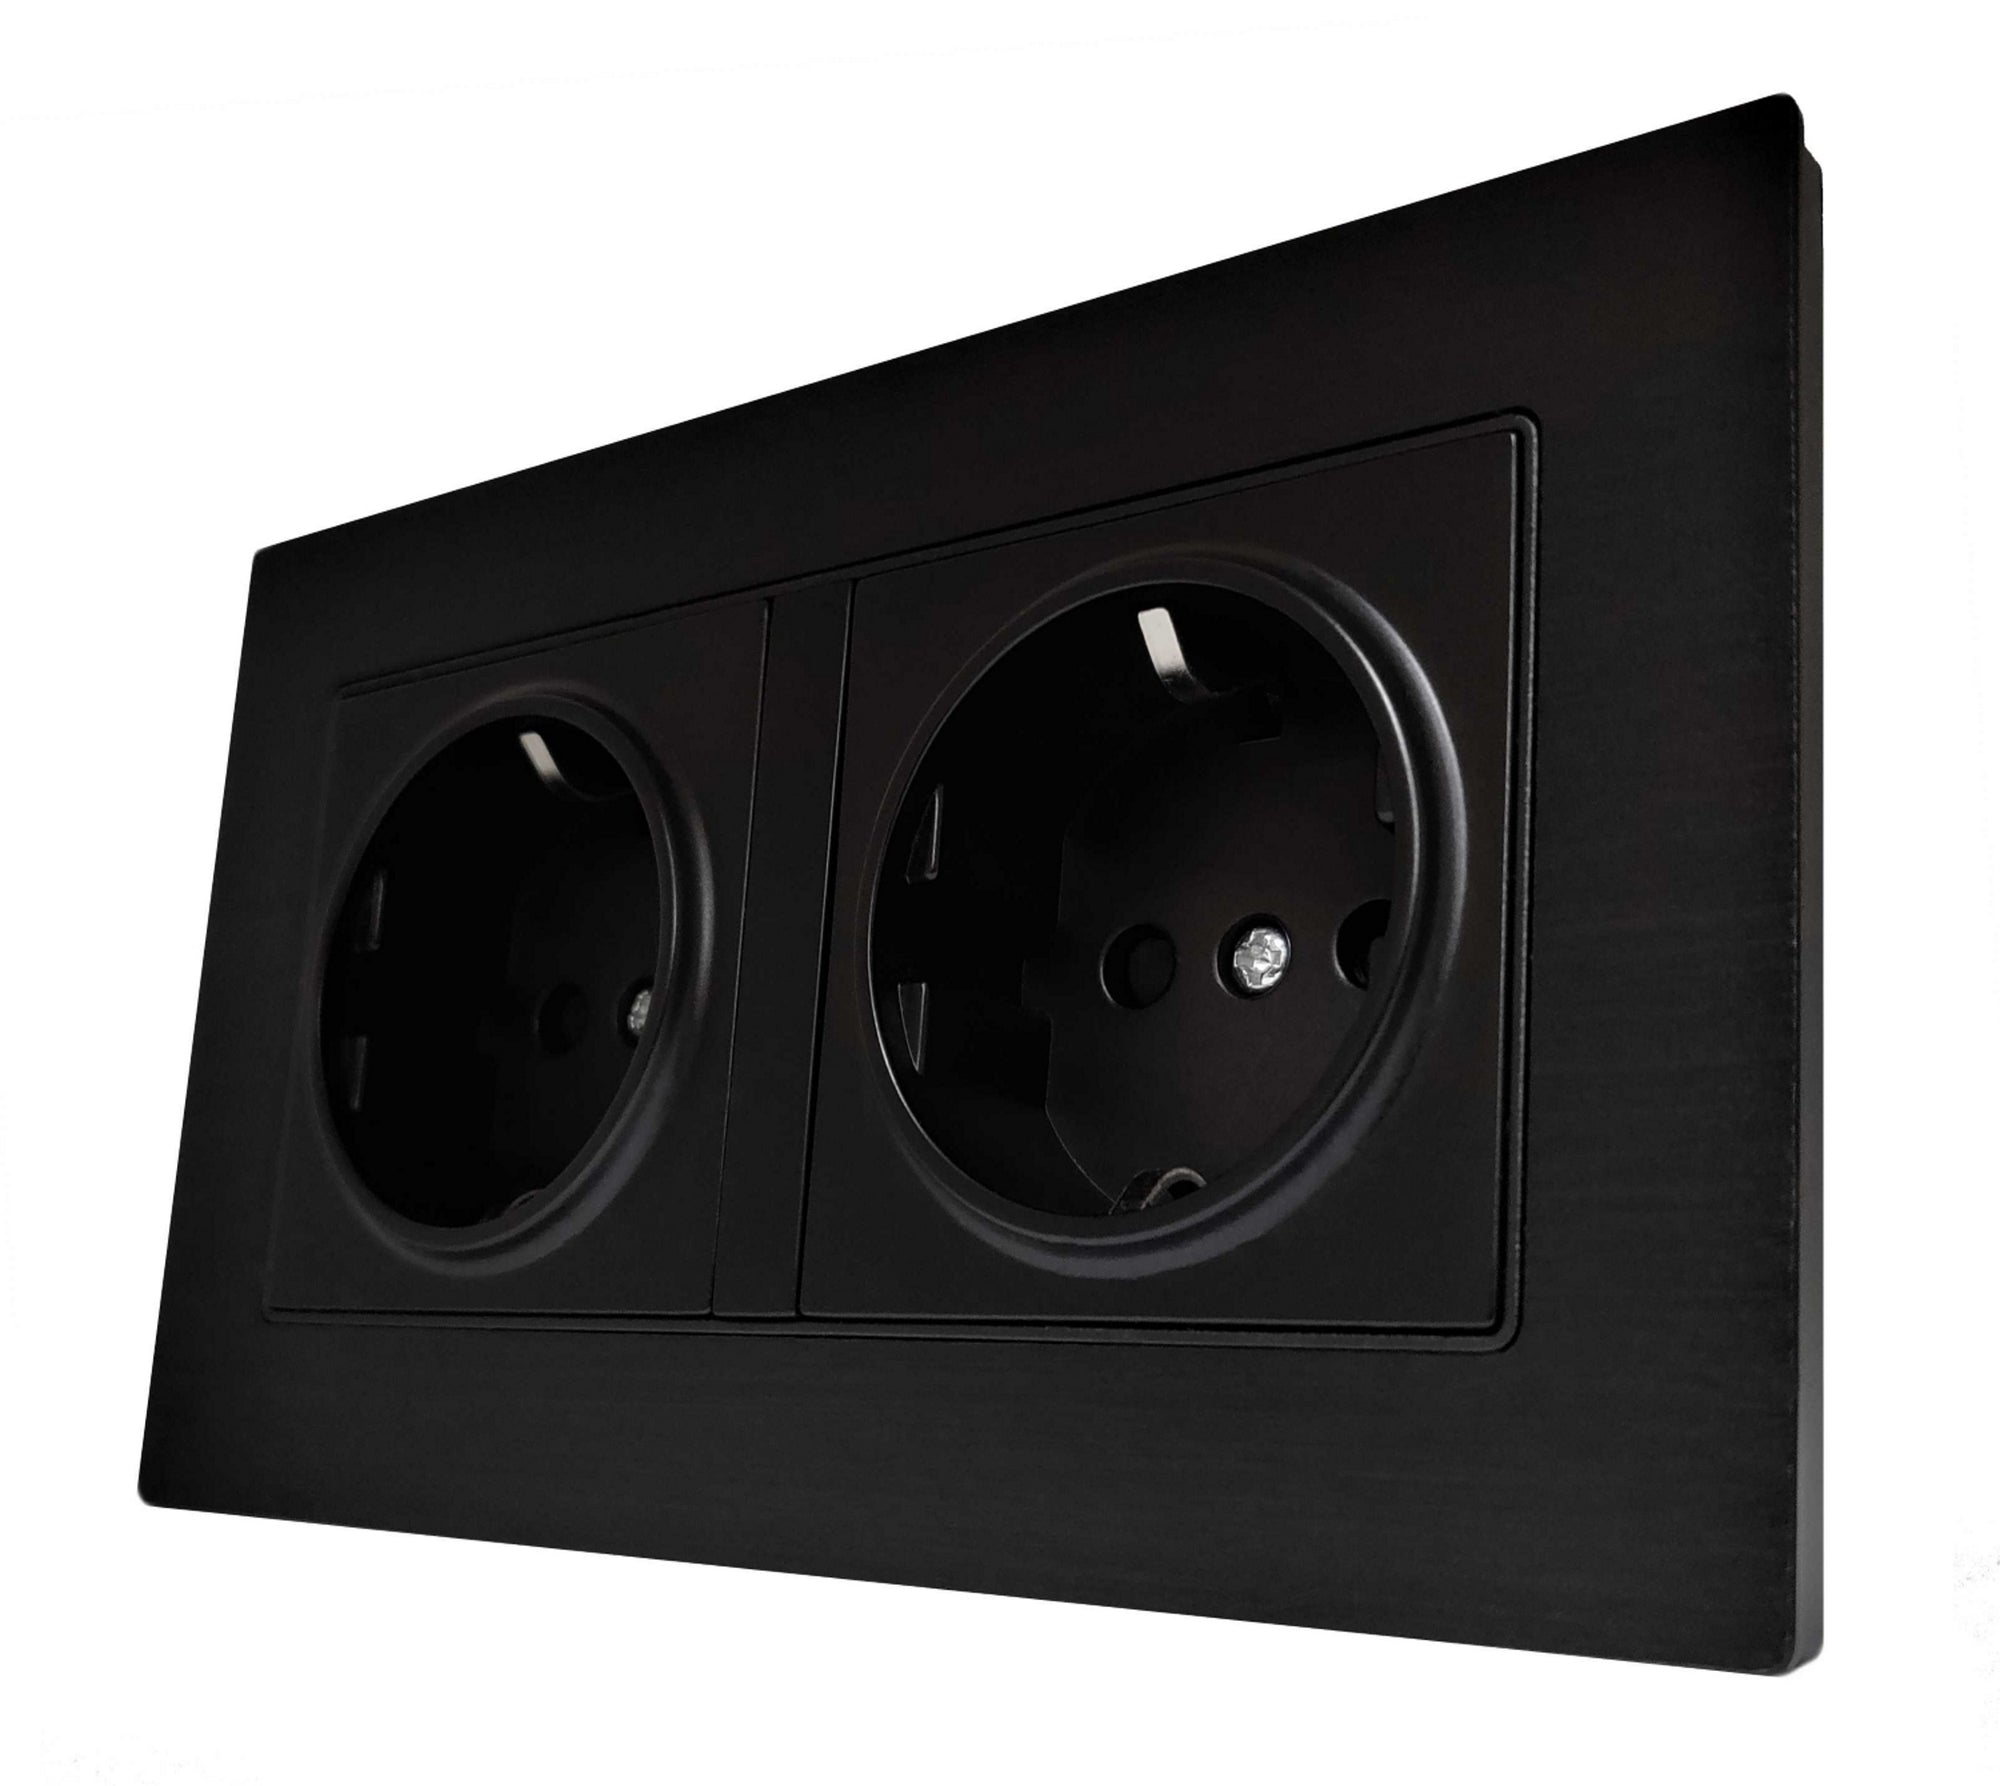 Double Schuko EU 16A 2-Pin AC Wall Power Socket in Black Brushed Alum Frame & Black Centre